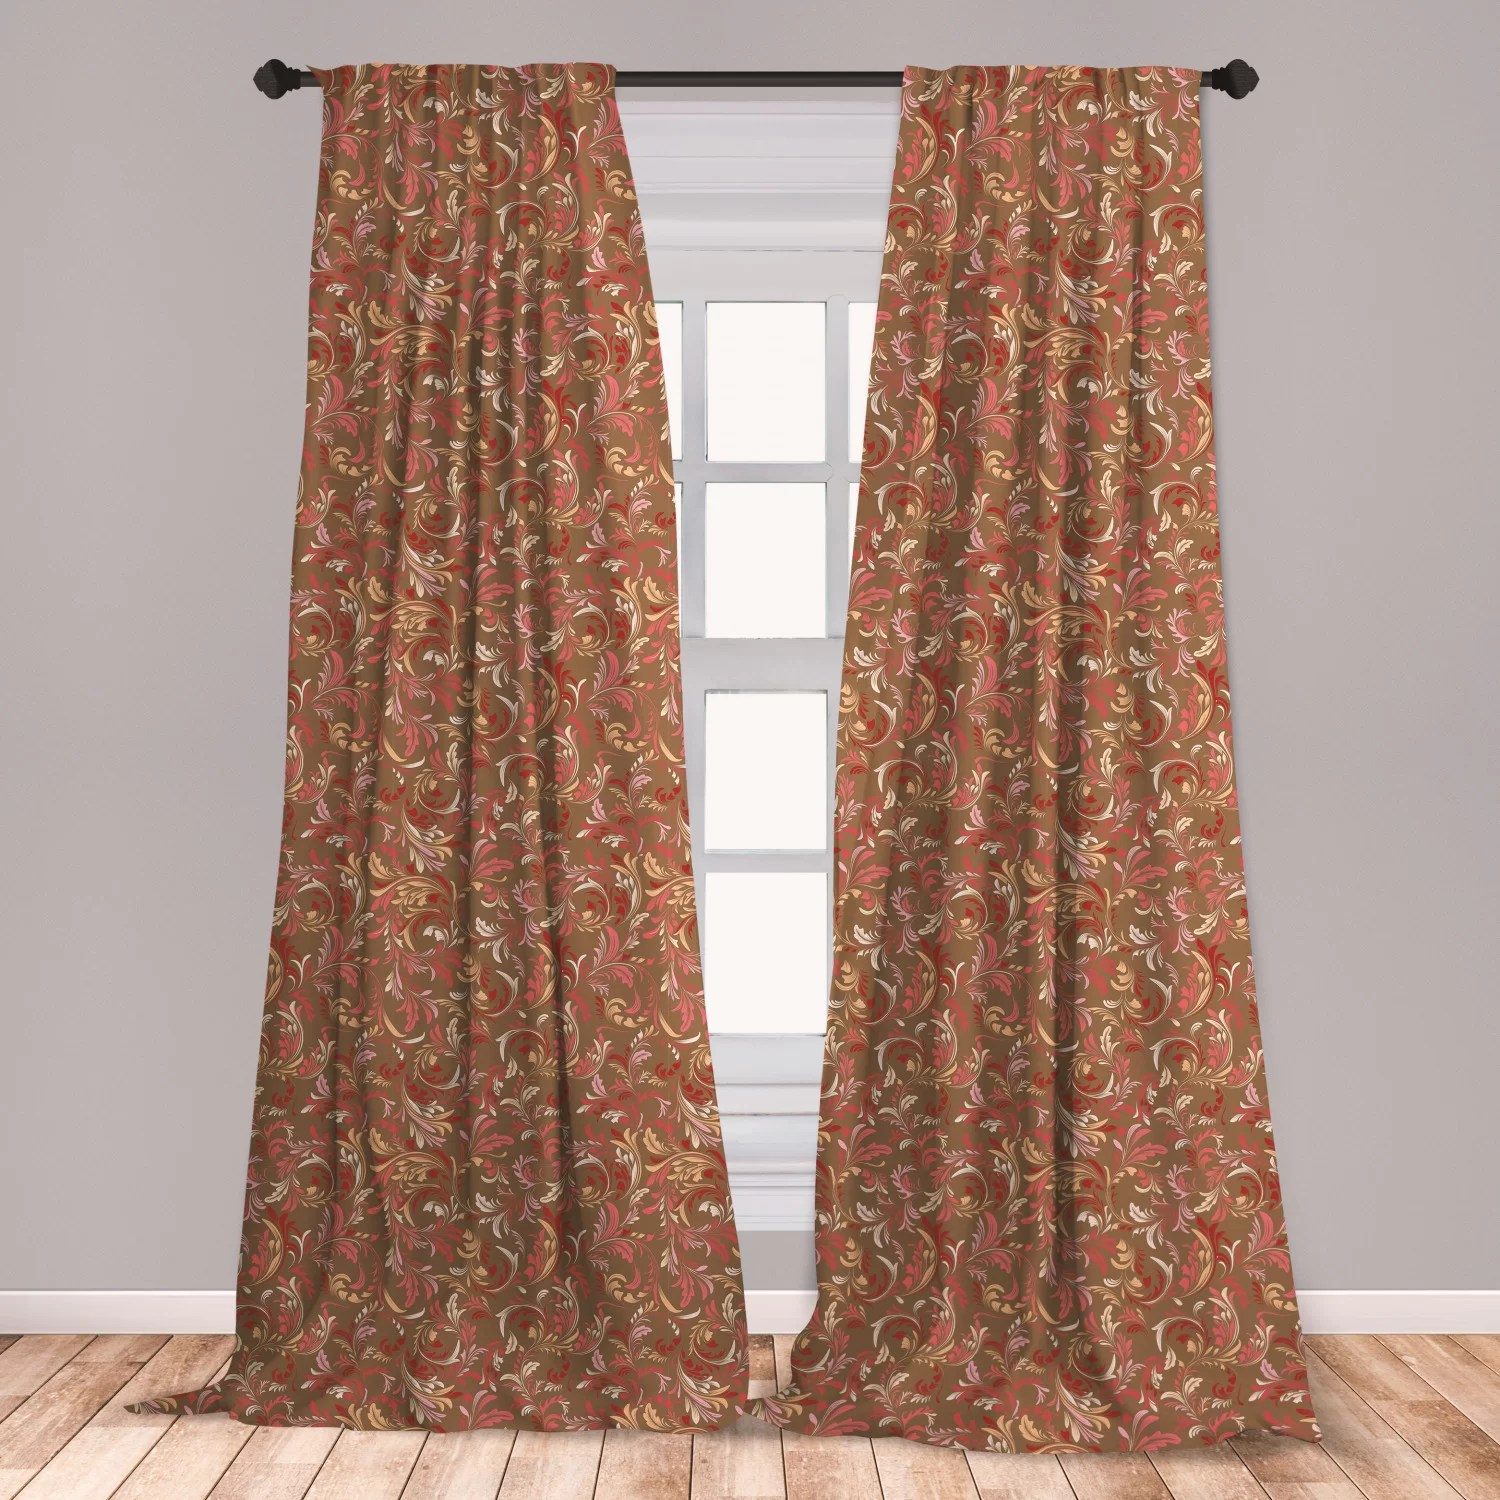 ambesonne nostalgic window curtains old fashioned victorian pattern with leaves petals classical feminine vintage lightweight decorative panels set